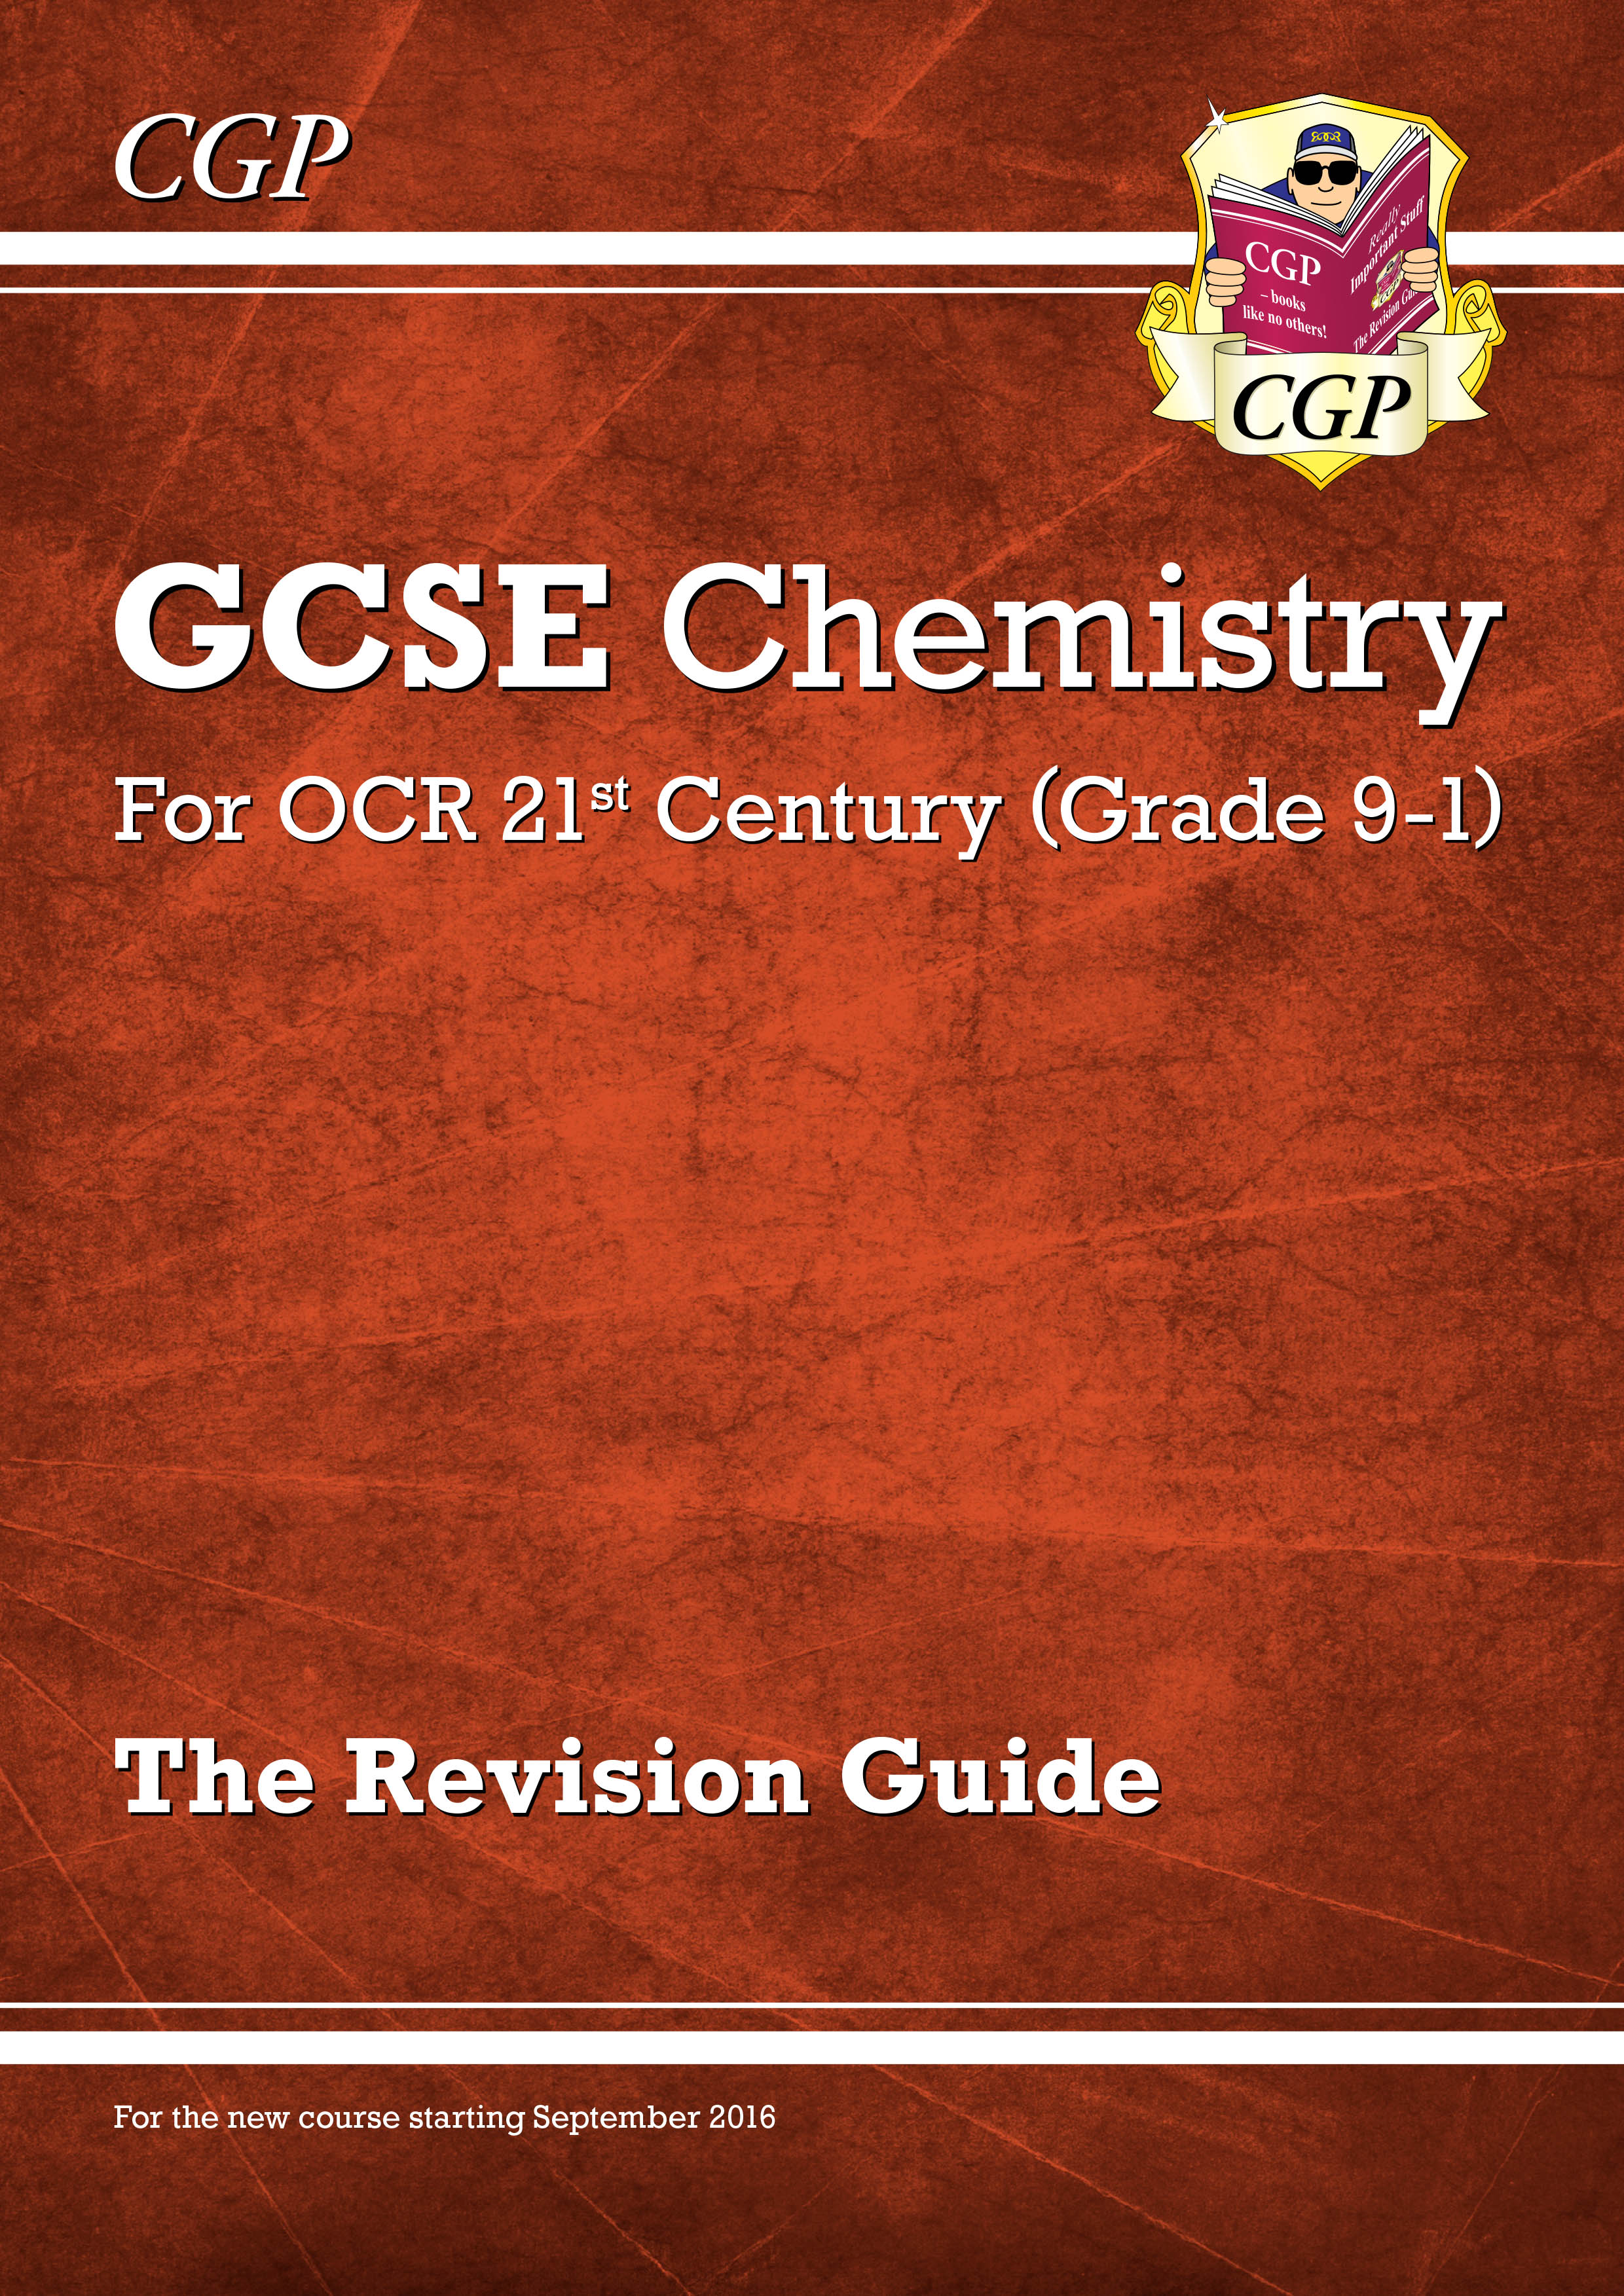 C2R45DK - New Grade 9-1 GCSE Chemistry: OCR 21st Century Revision Guide